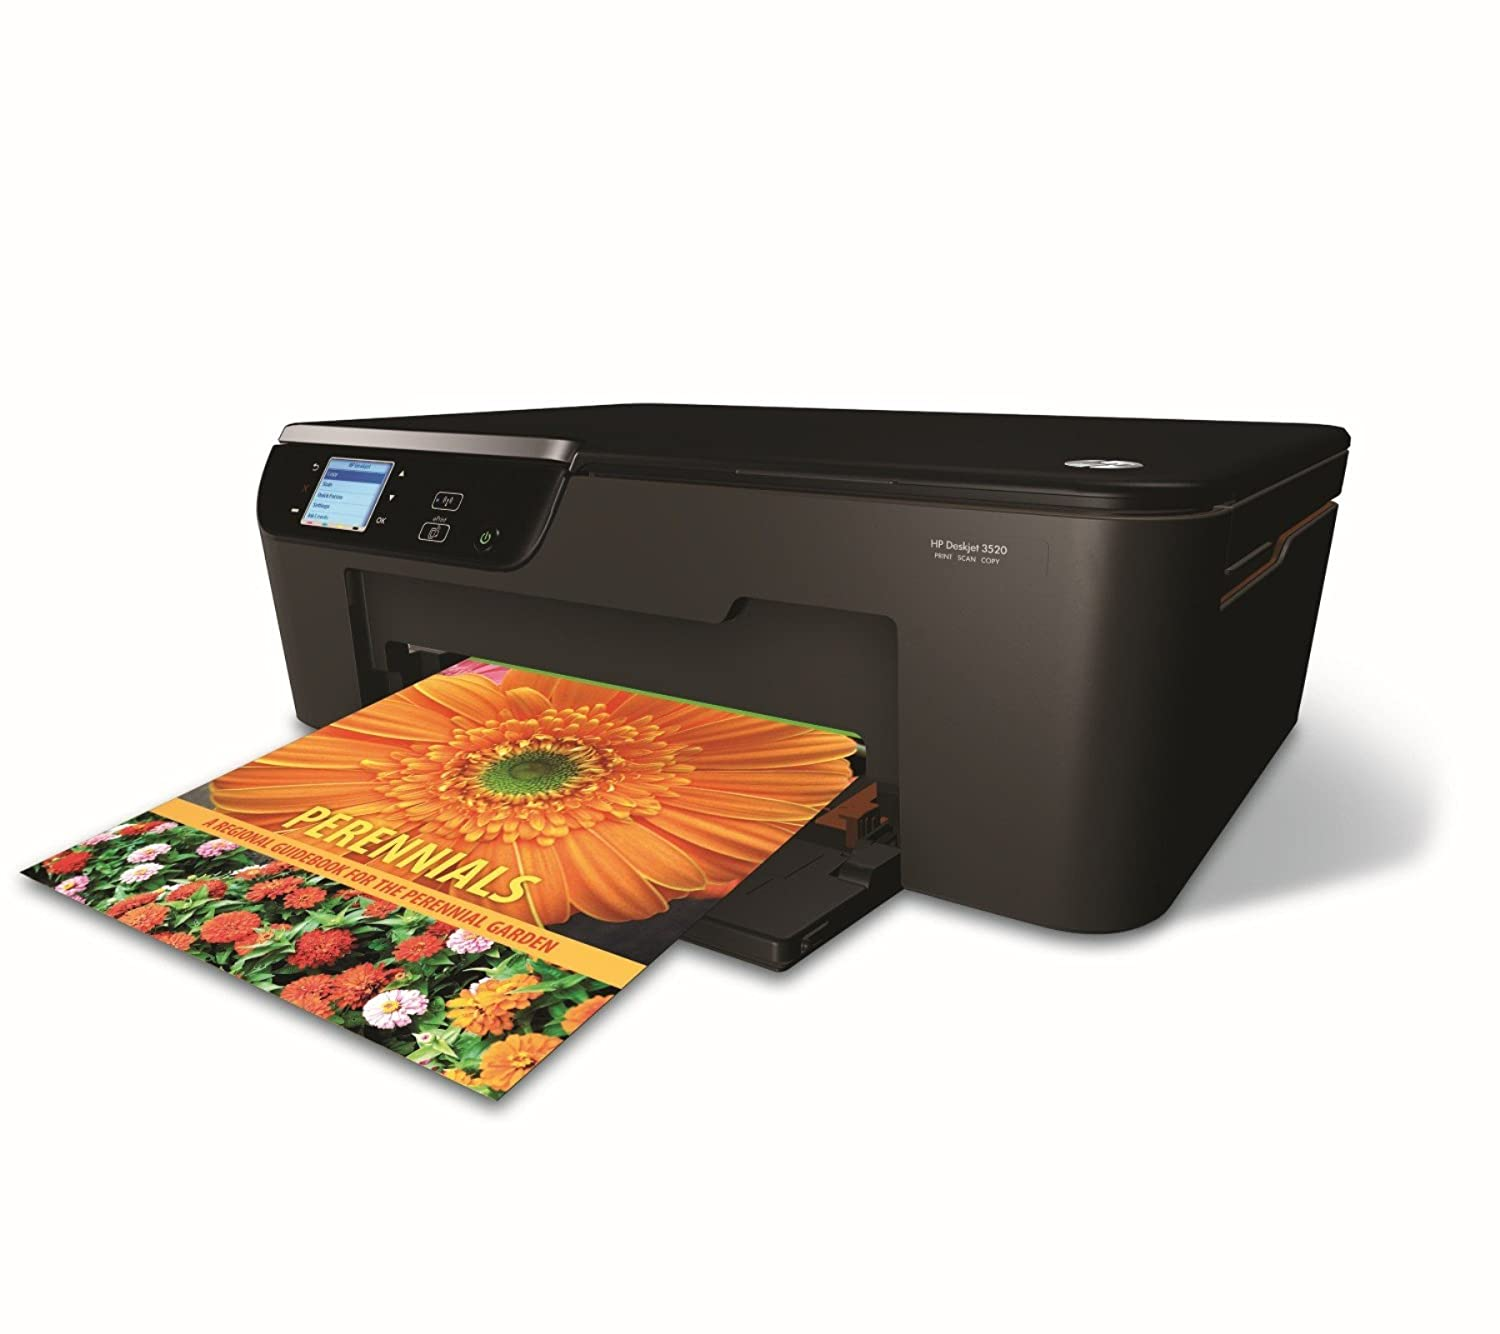 Hp Deskjet 3520 Series Not Printing